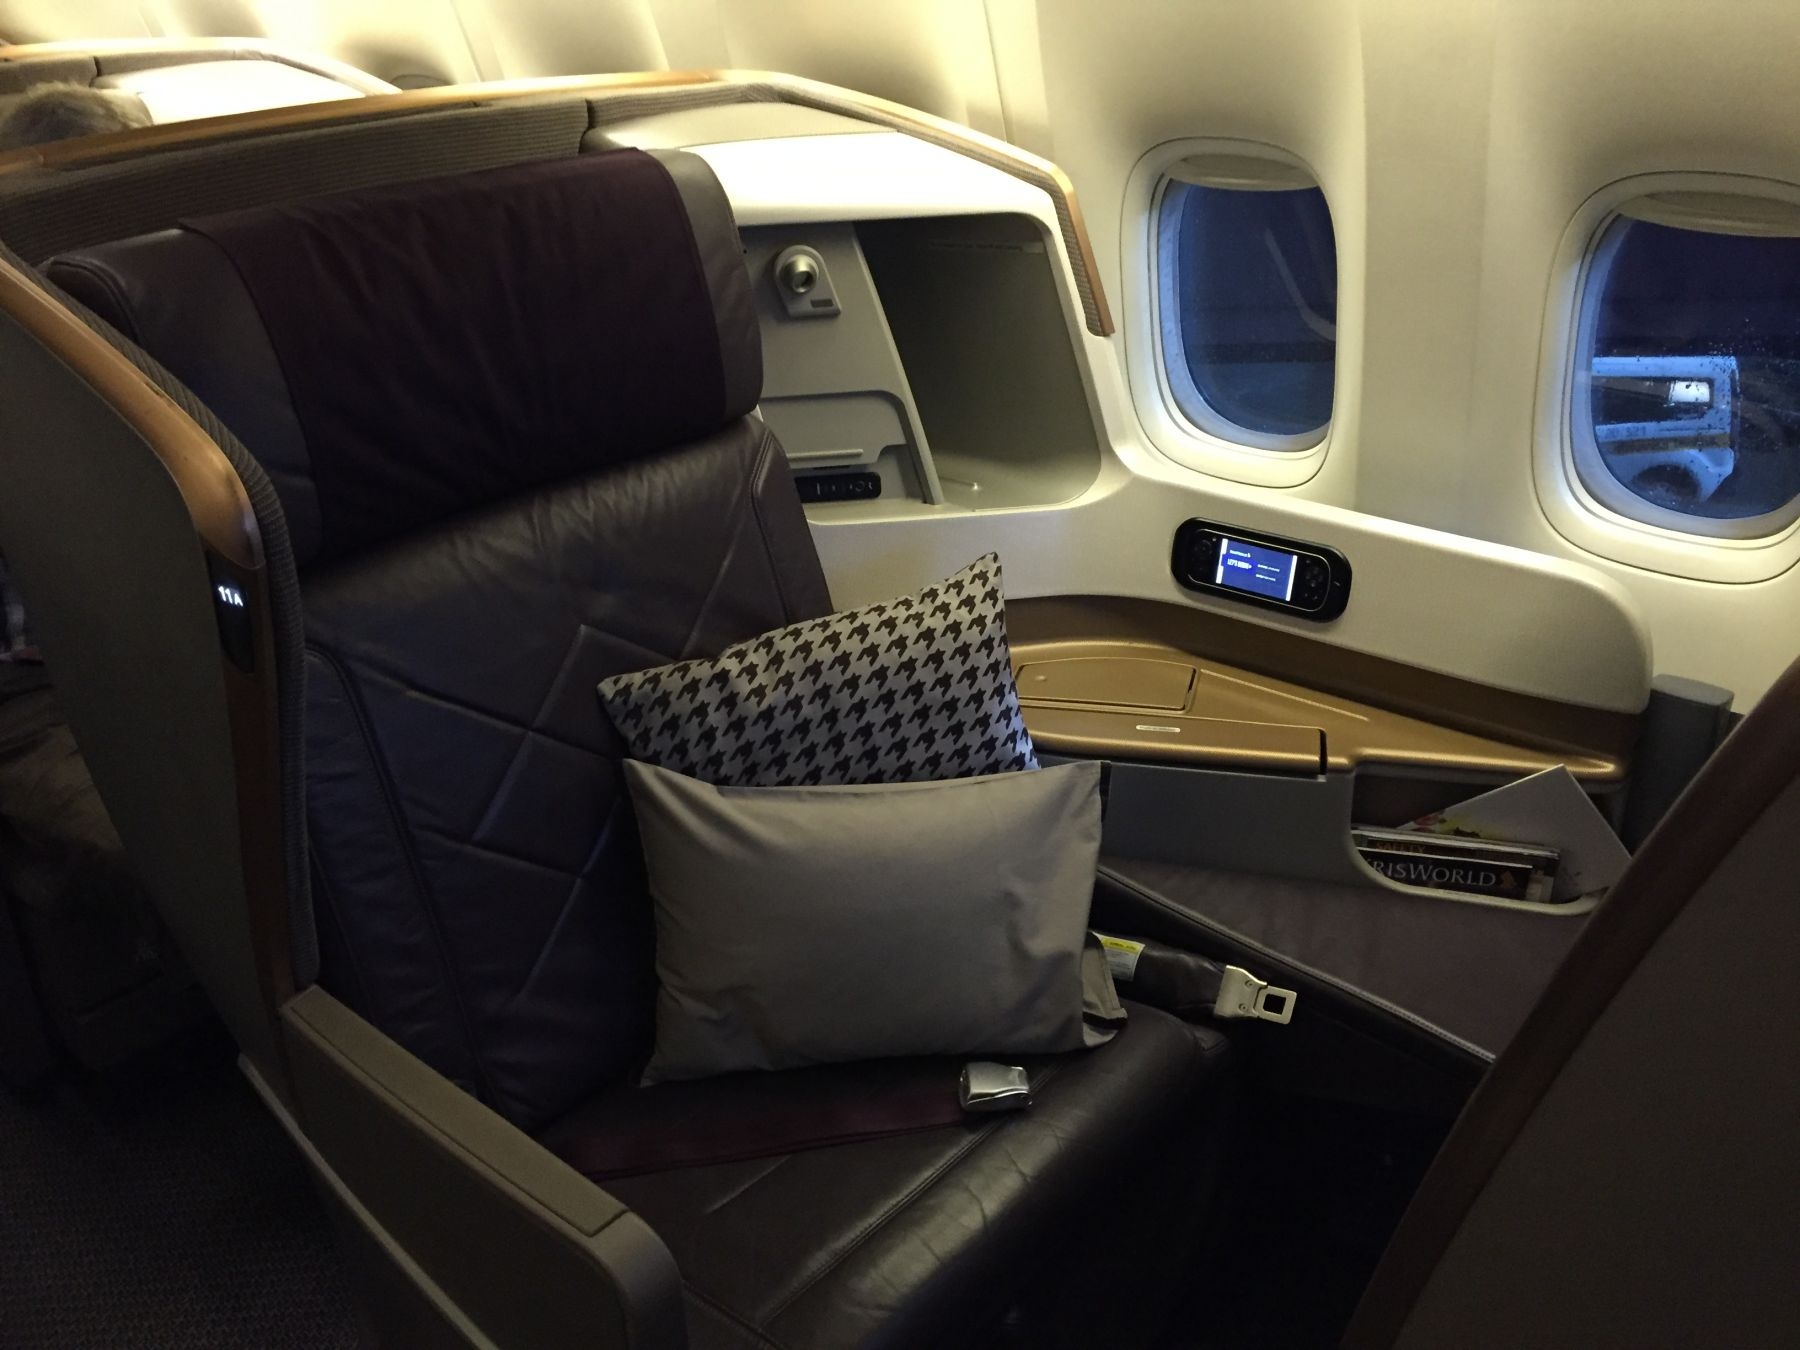 Sete 11A - Singapore Airlines nyeste Business Class-produkt